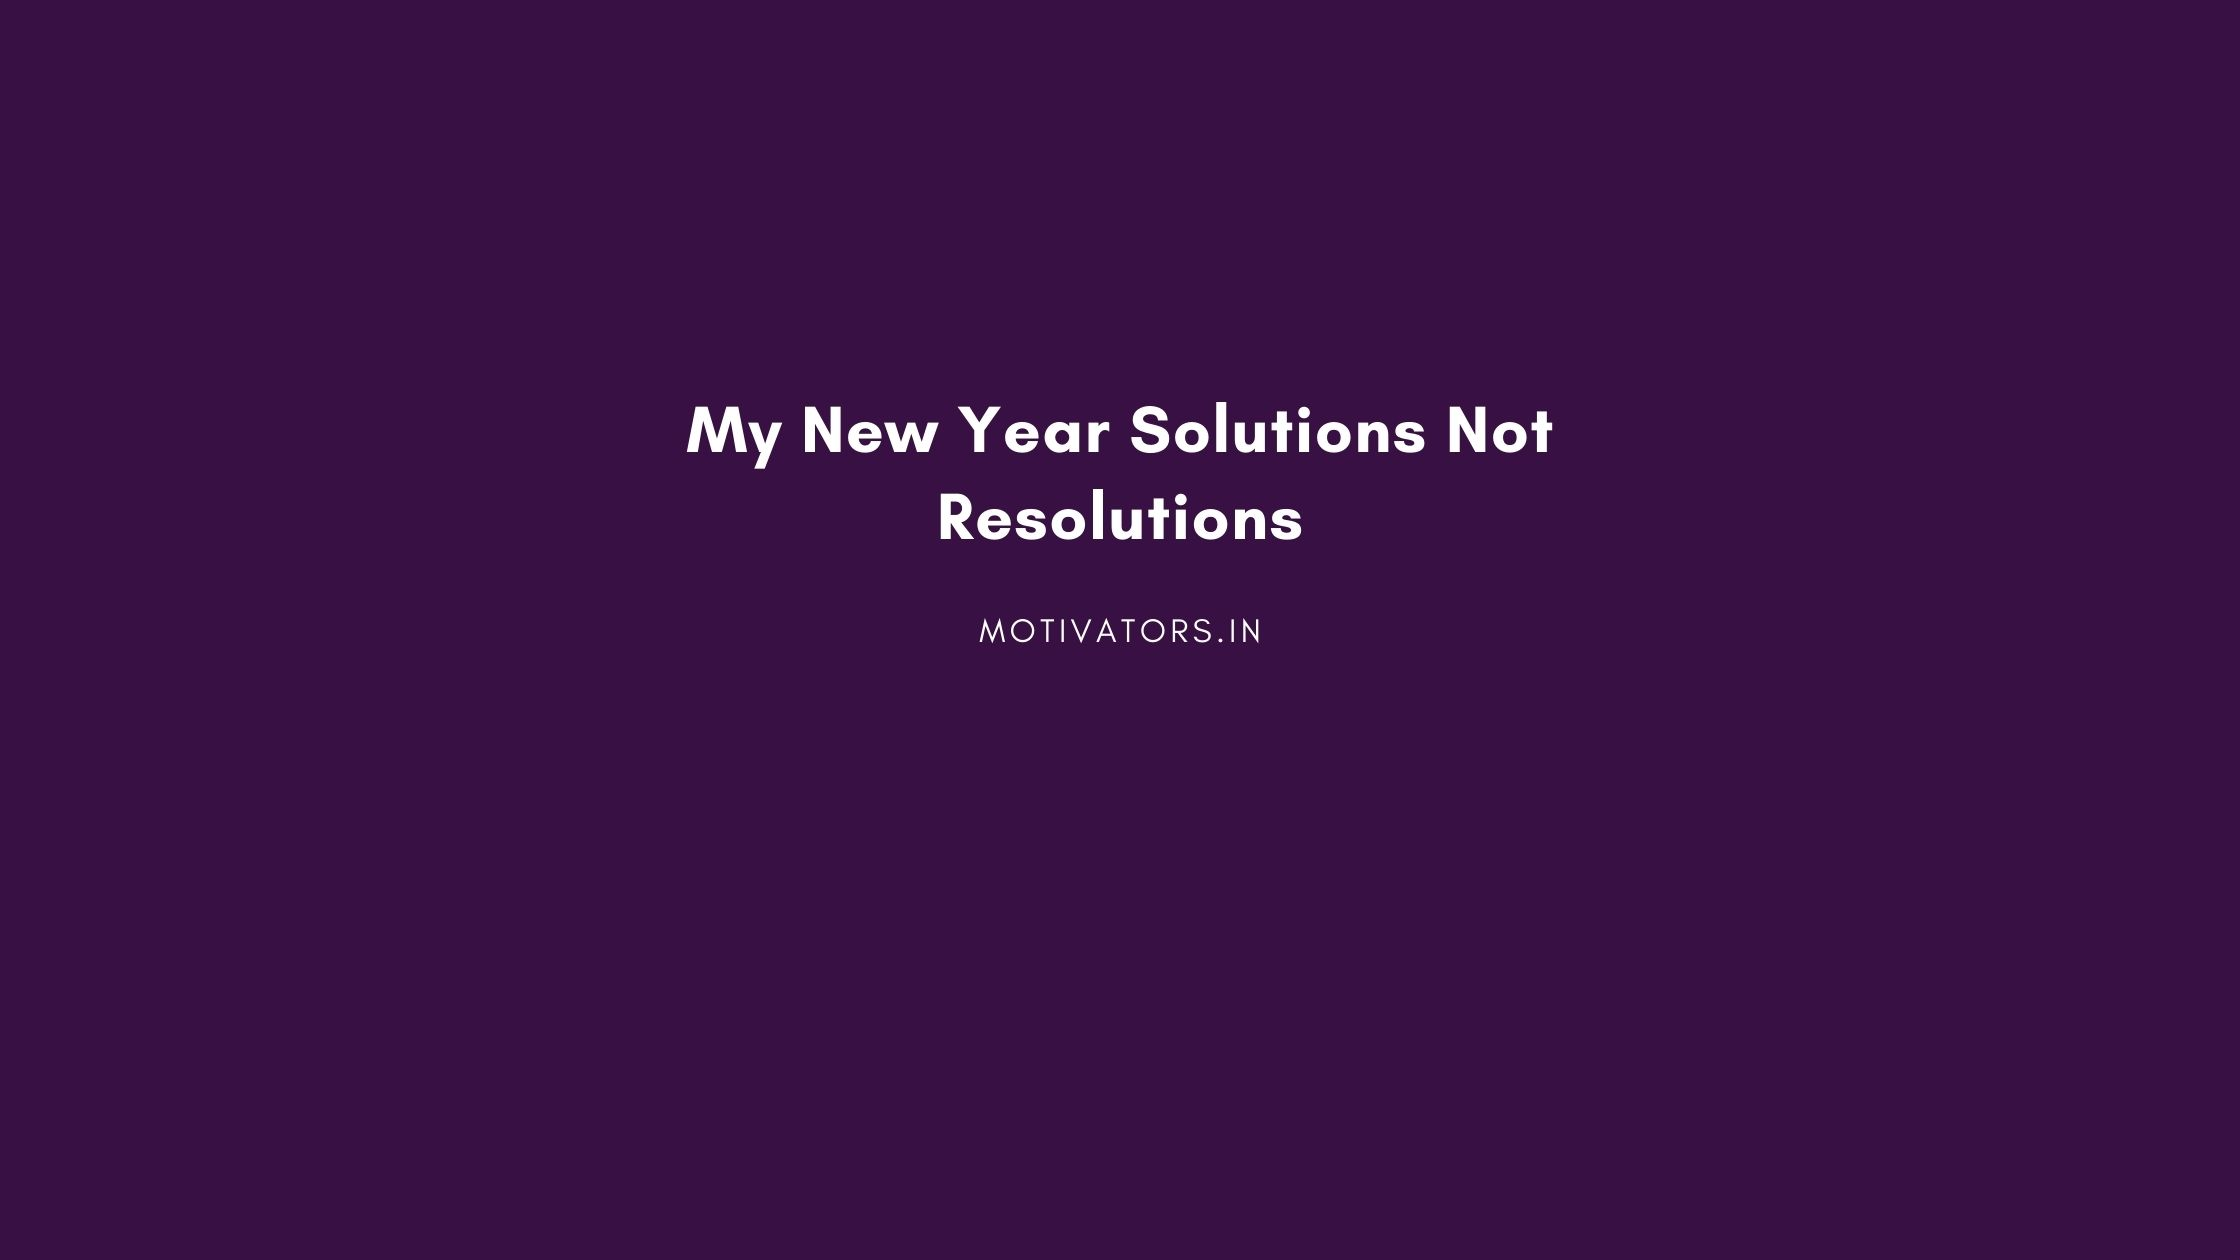 My New Year Solutions Not Resolutions